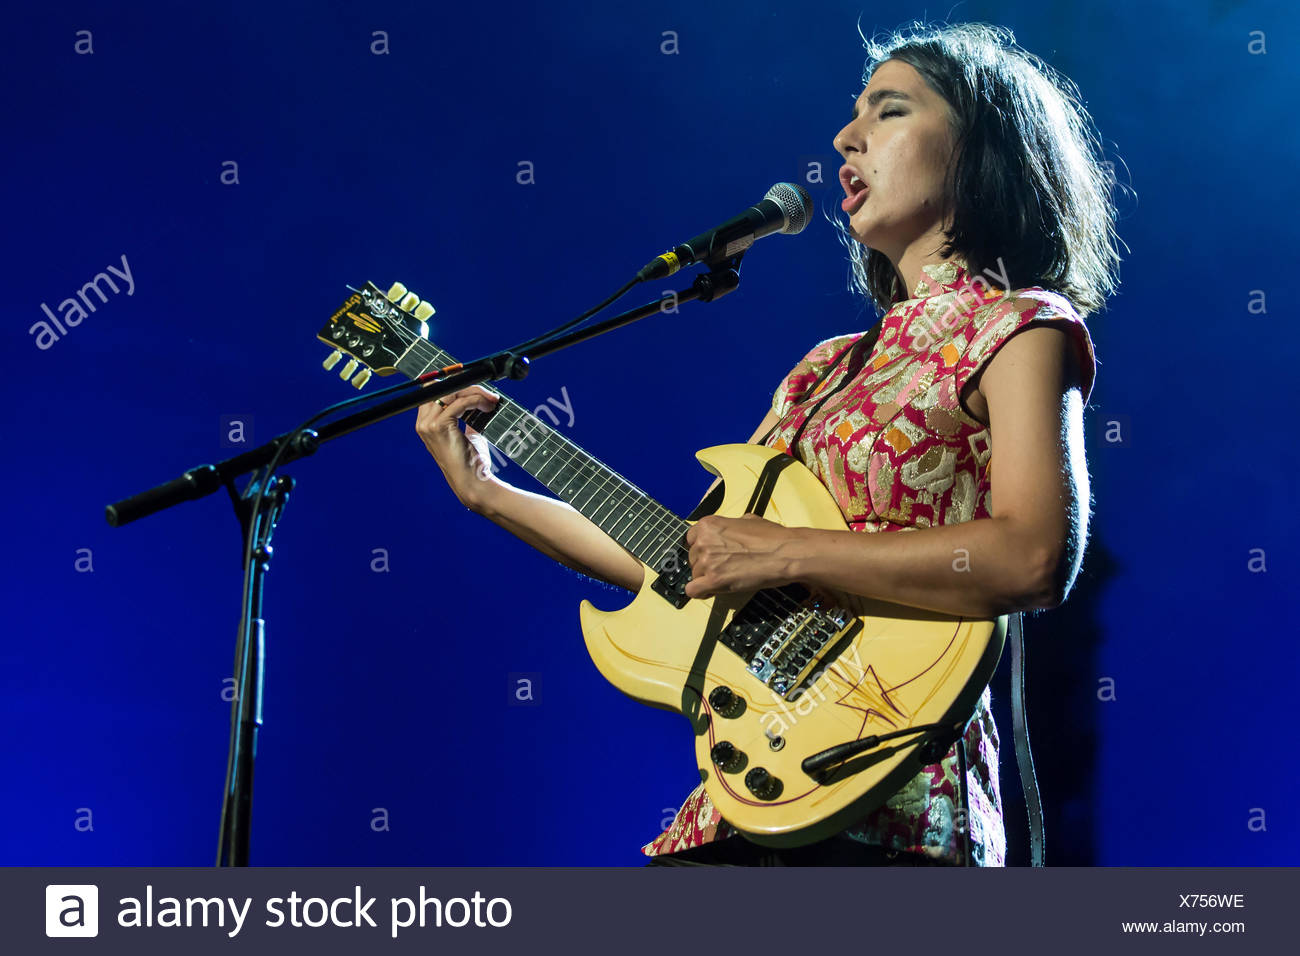 Mariam The Believer - Stock Image